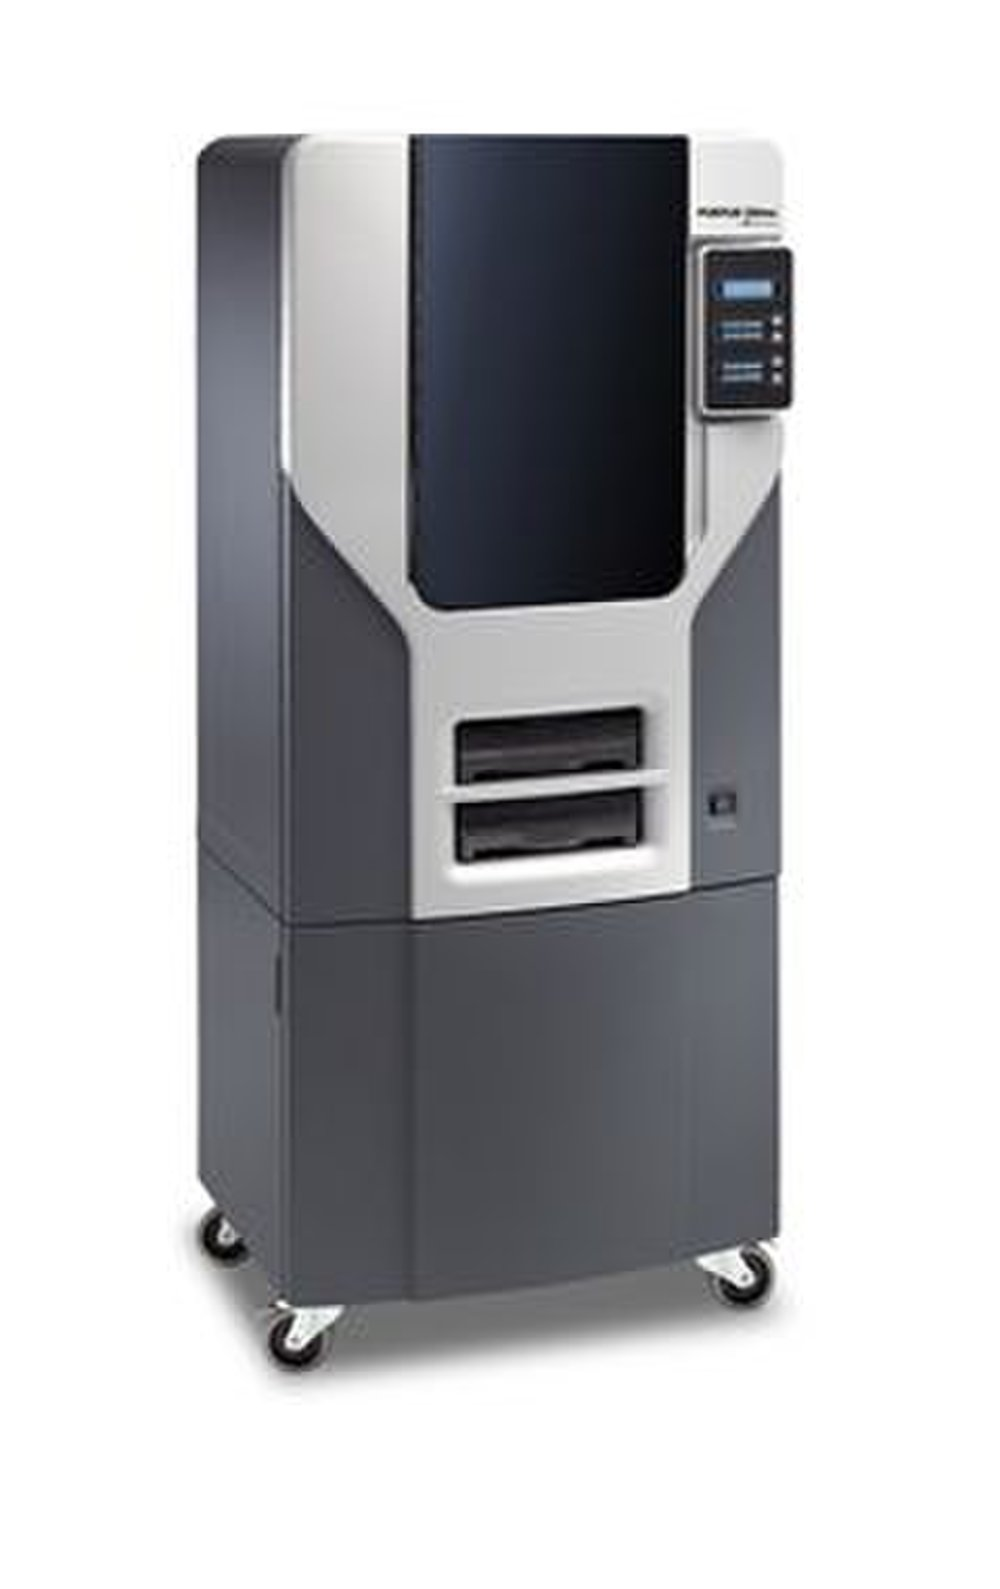 The Fortus 250mc has an optional cabinet that sits below the printer.